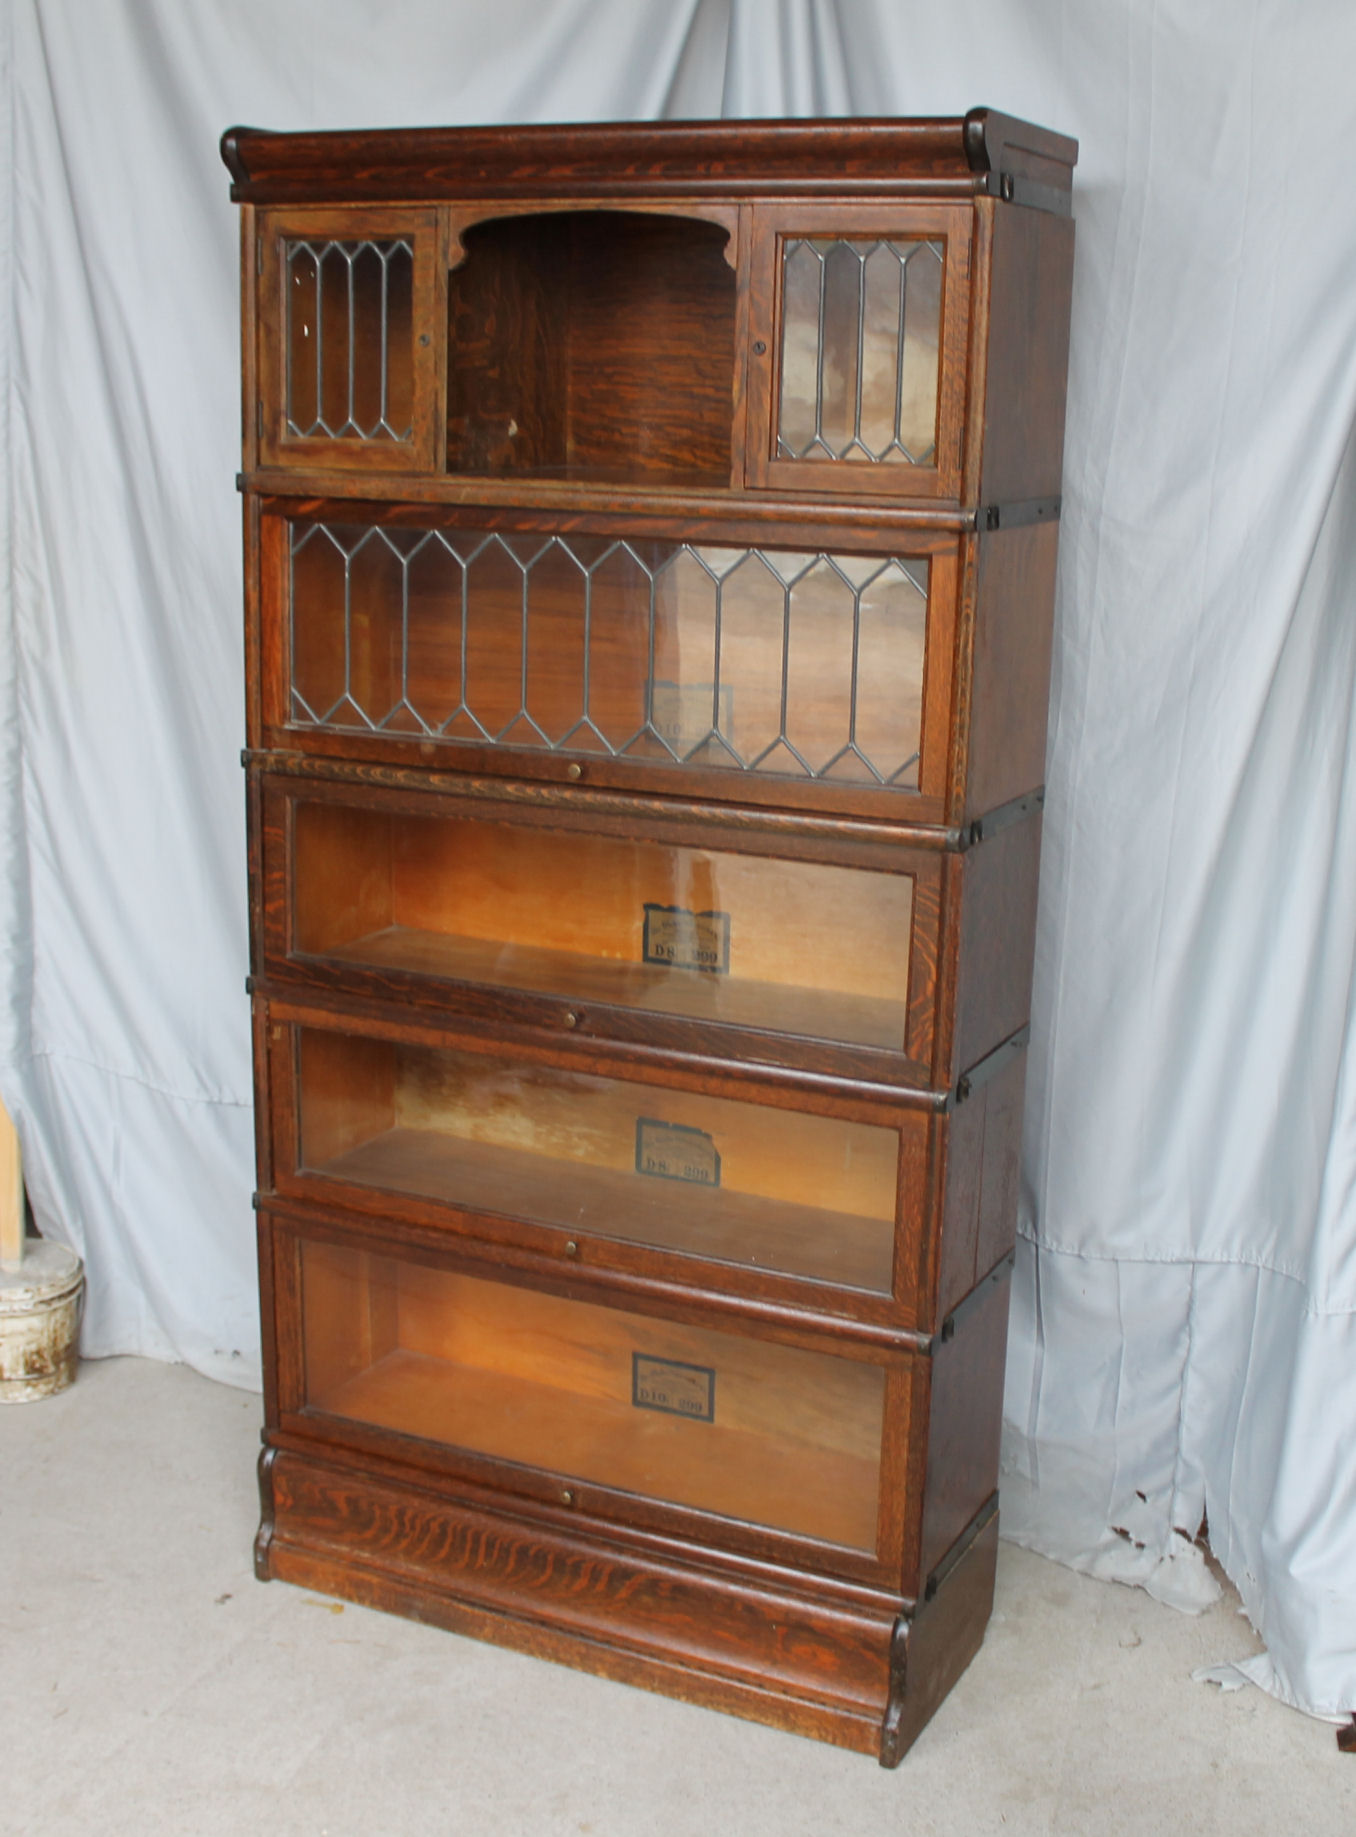 ... Oak Bookcase – with small leaded glass doors – Globe Wernicke. Sold - Bargain John's Antiques Rare Oak Bookcase - With Small Leaded